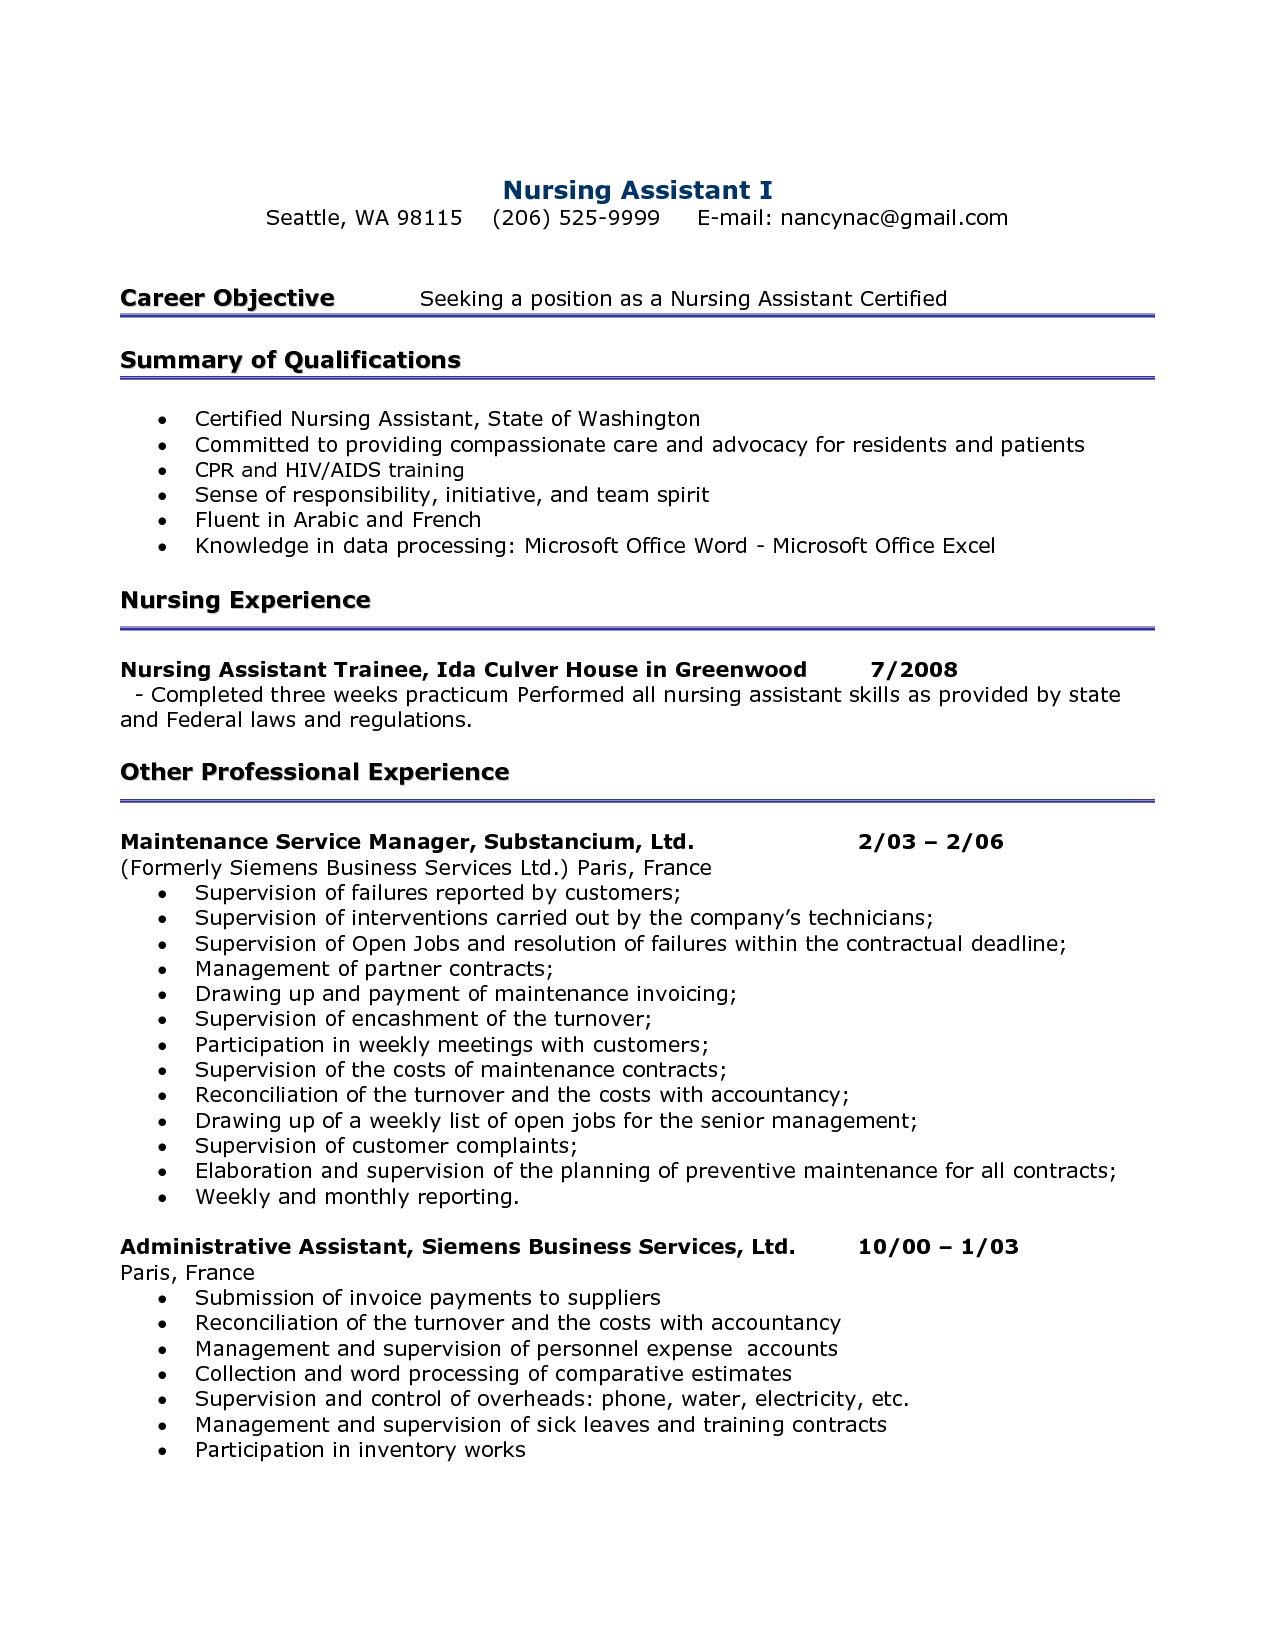 Superbe Objective For Certified Nursing Assistant Resume Cna Sample Resume, Entry  Level Cna Resume Sample Create My Resume .